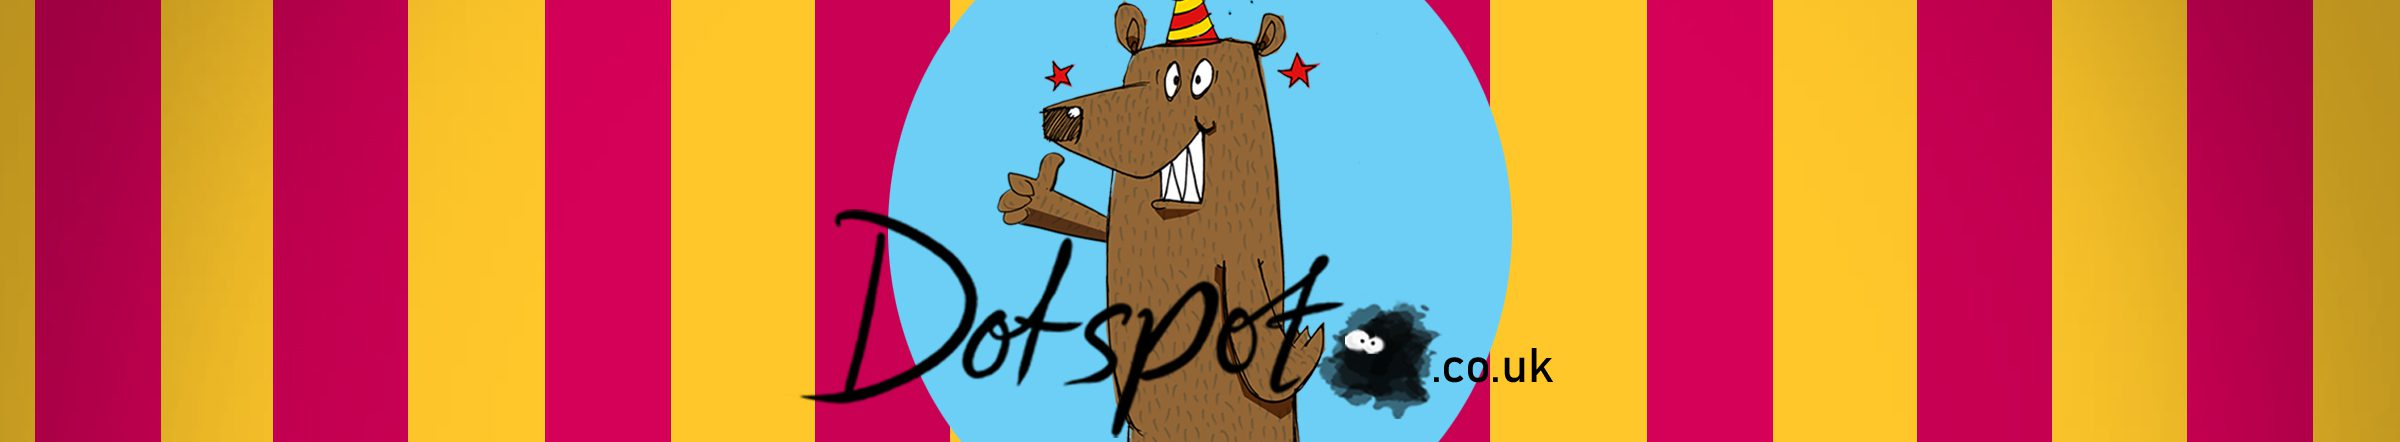 dotspot.co.uk